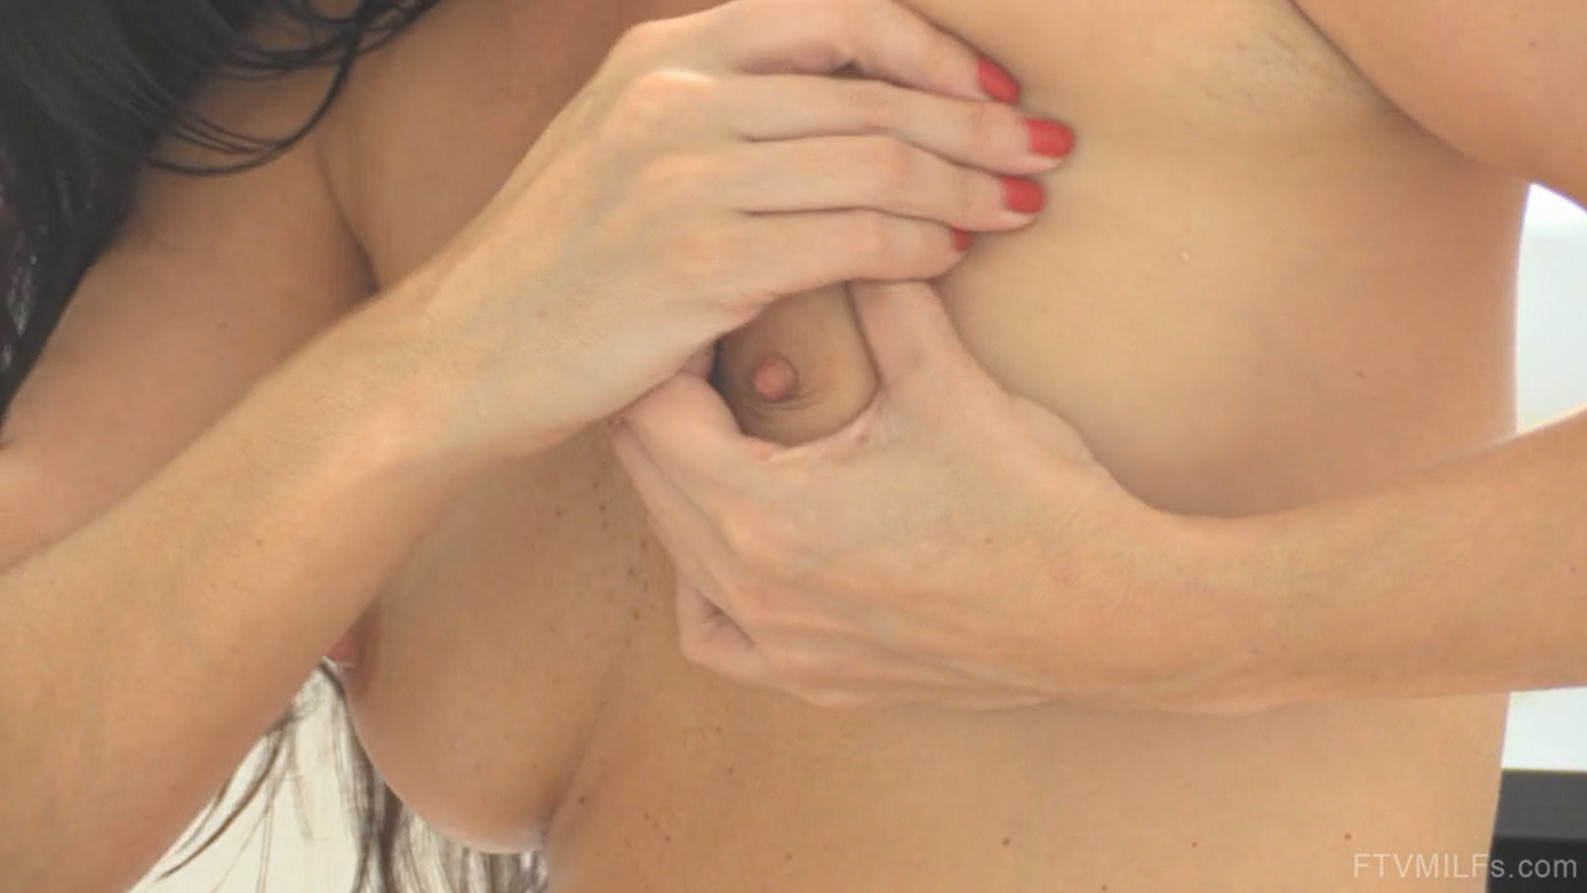 Hard Boobs Massage with FTV MILFs Kobe